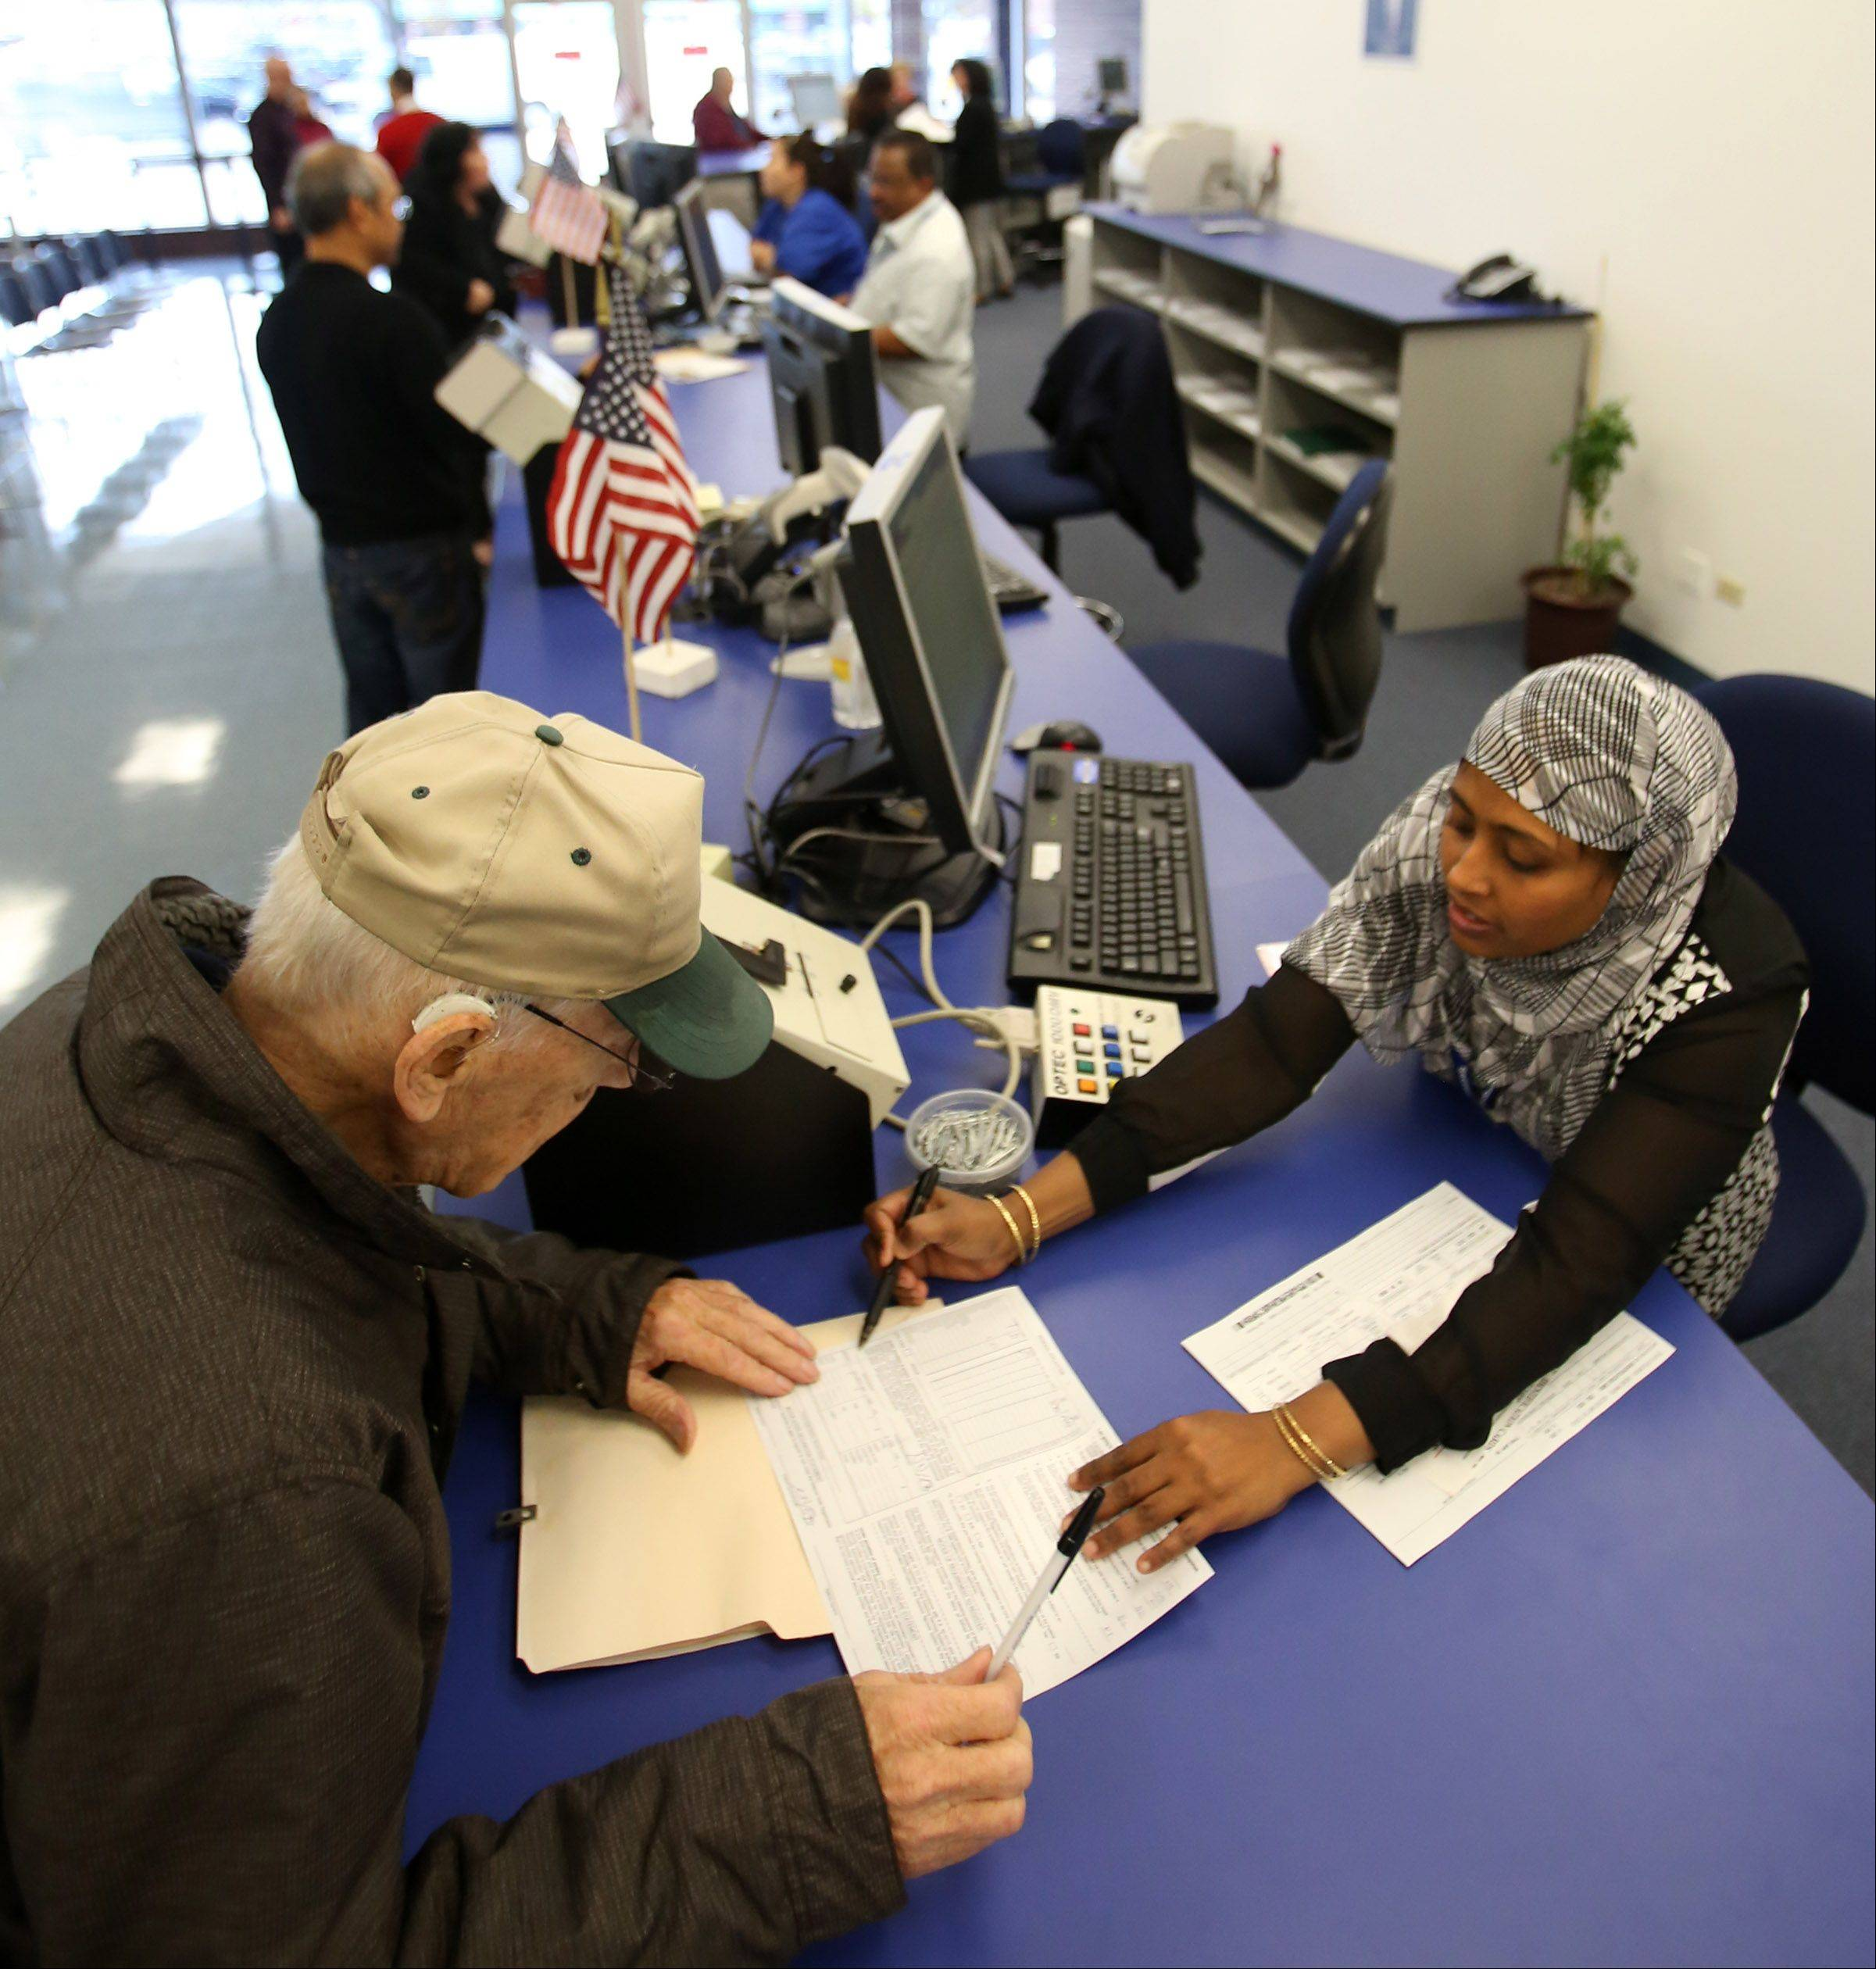 Robert Sperling of Des Plaines renews his drivers license Tuesday with Secretary of State employee Nahida Nasrin on the opening day of a new driver services facility in Des Plaines. Sperling said he lives only a mile away and didn't have to wait in line at all.